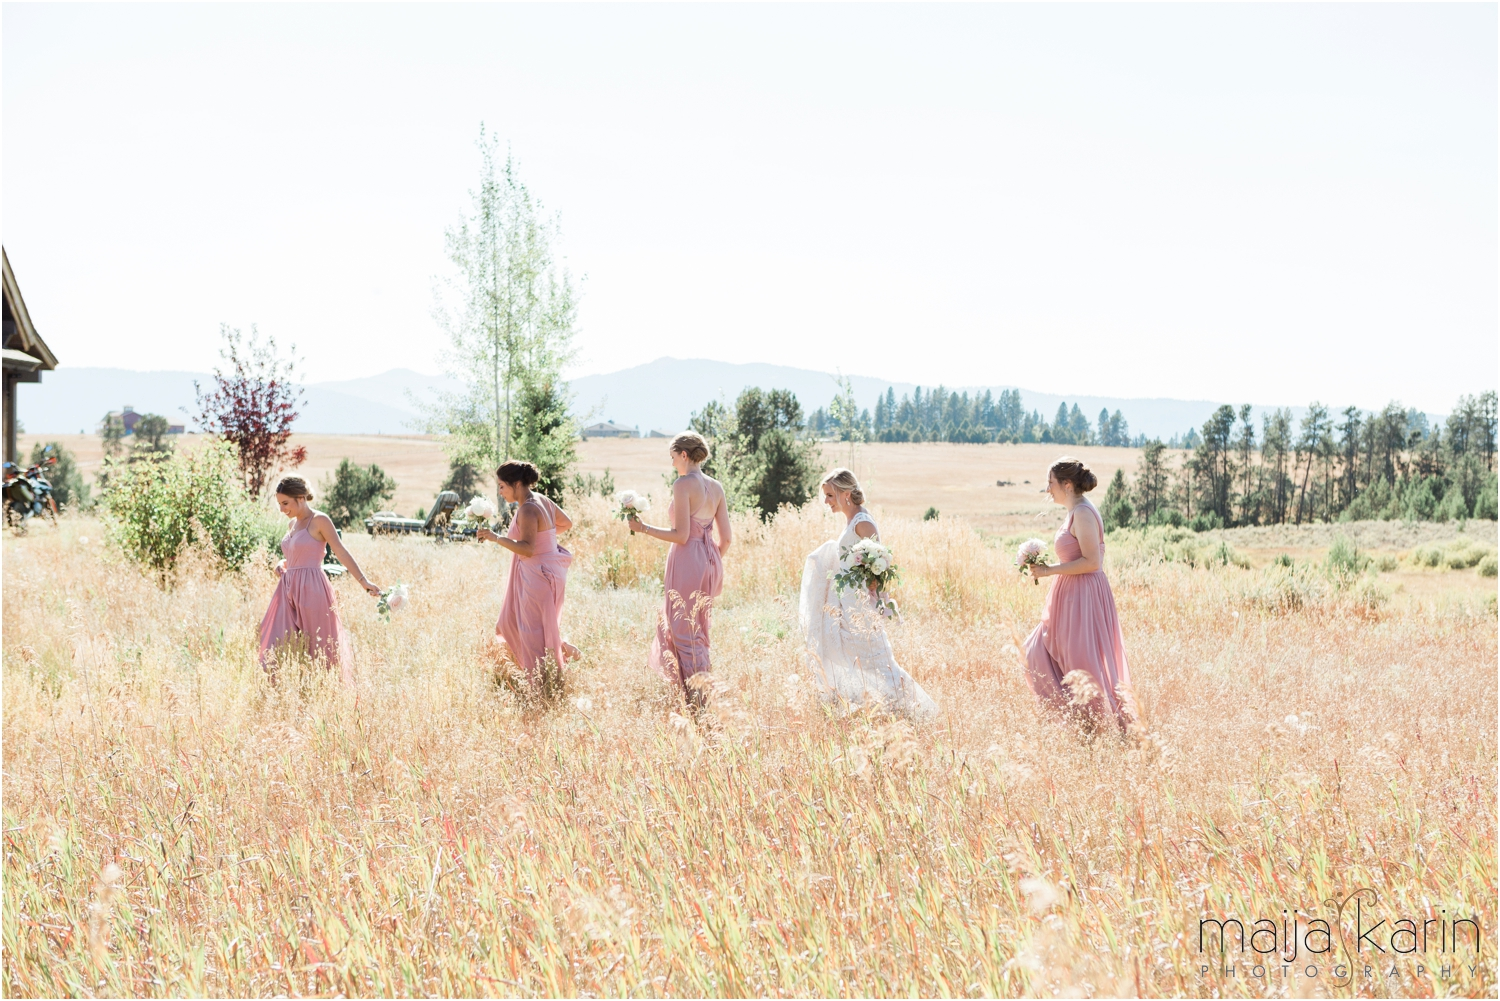 McCall-Idaho-Wedding-Maija-Karin-Photography_0052.jpg